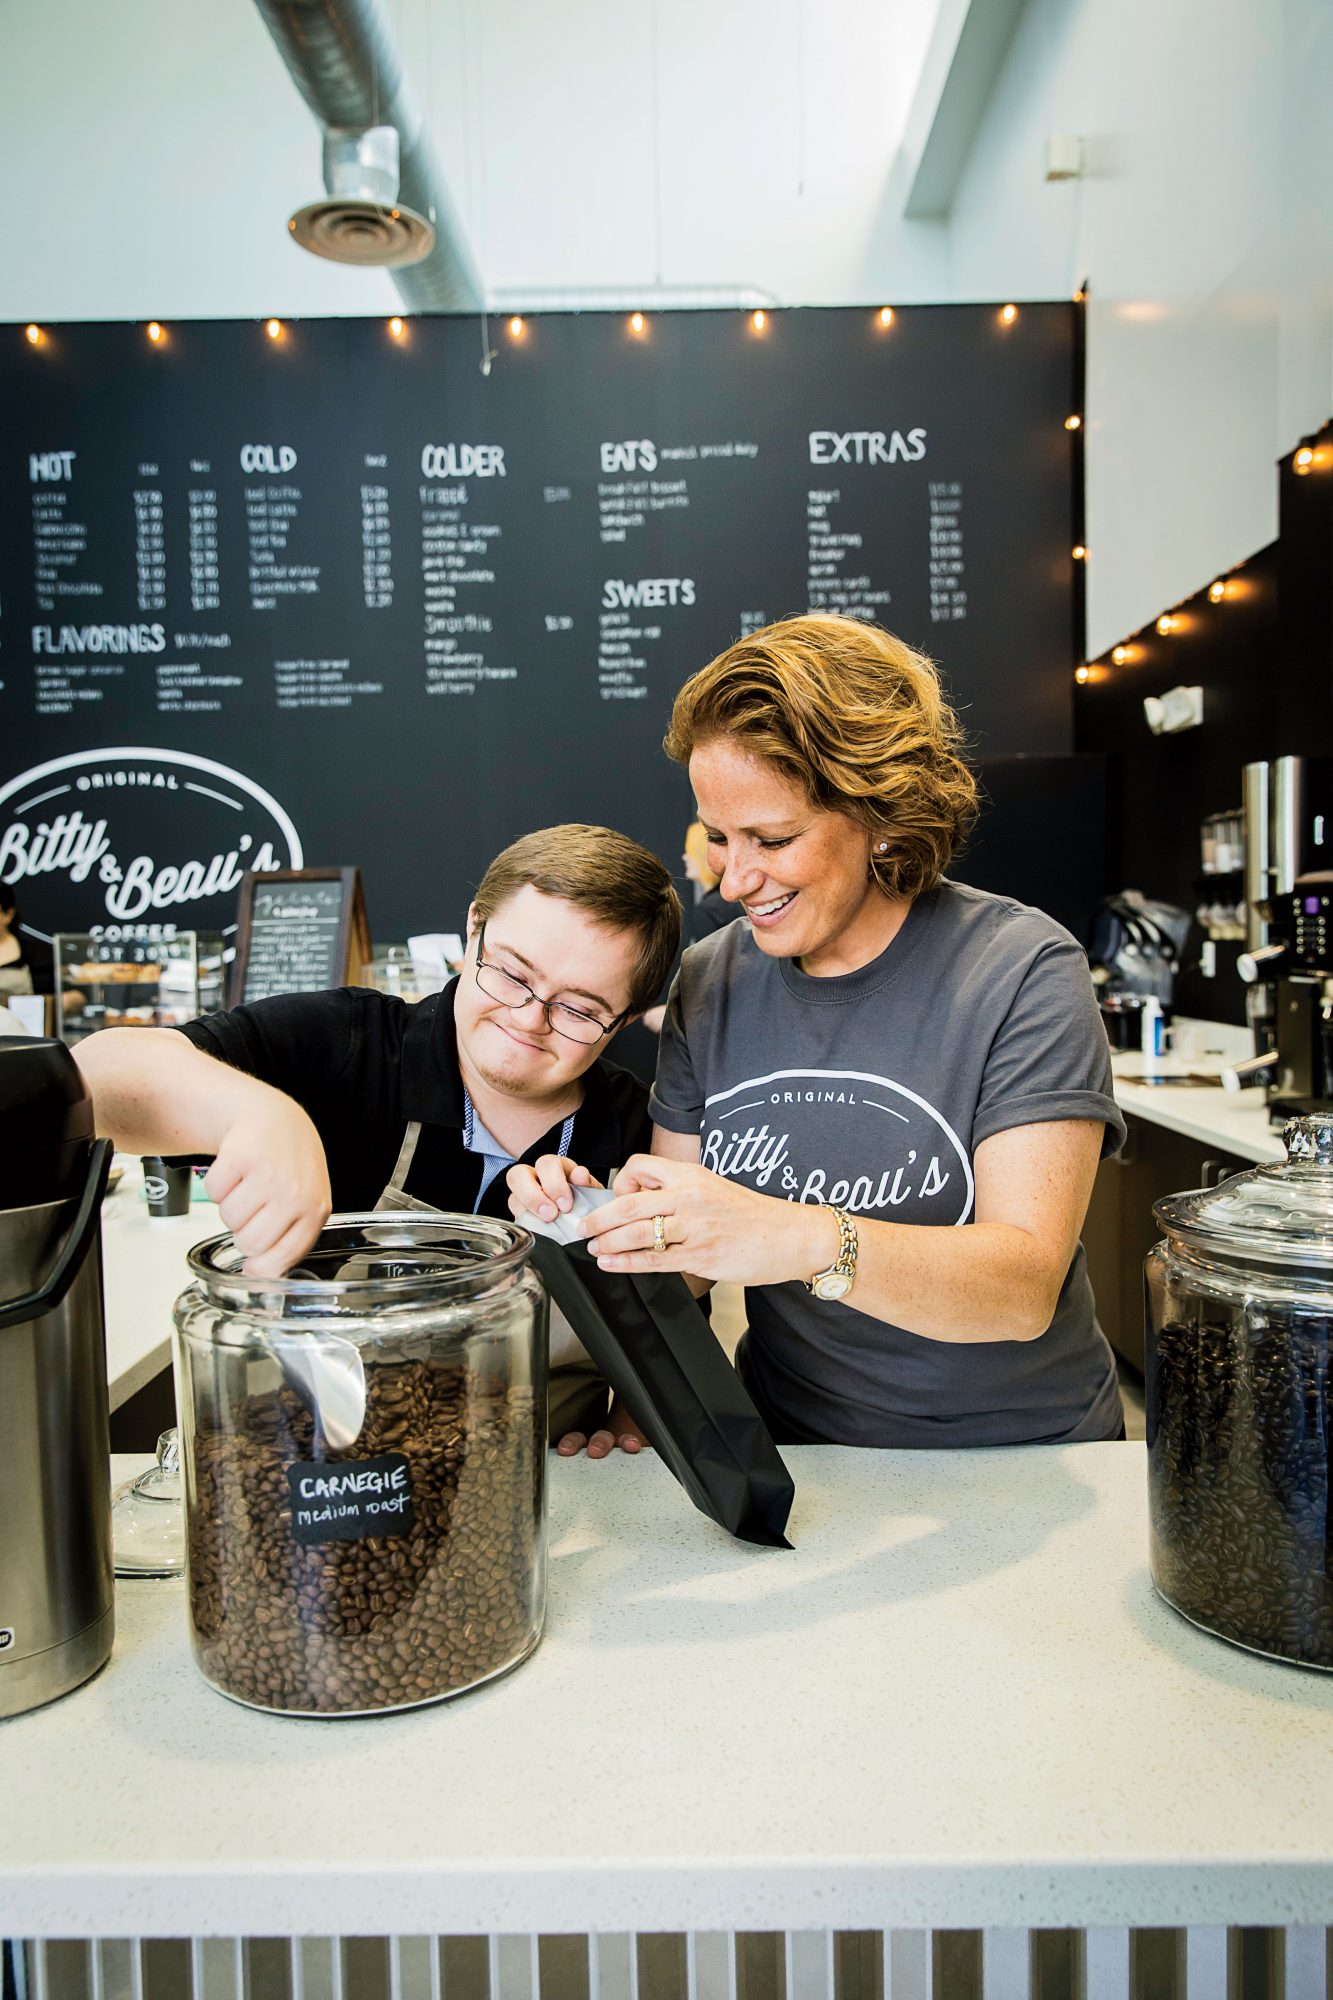 Amy Wright of Bitty & Beau's Coffee